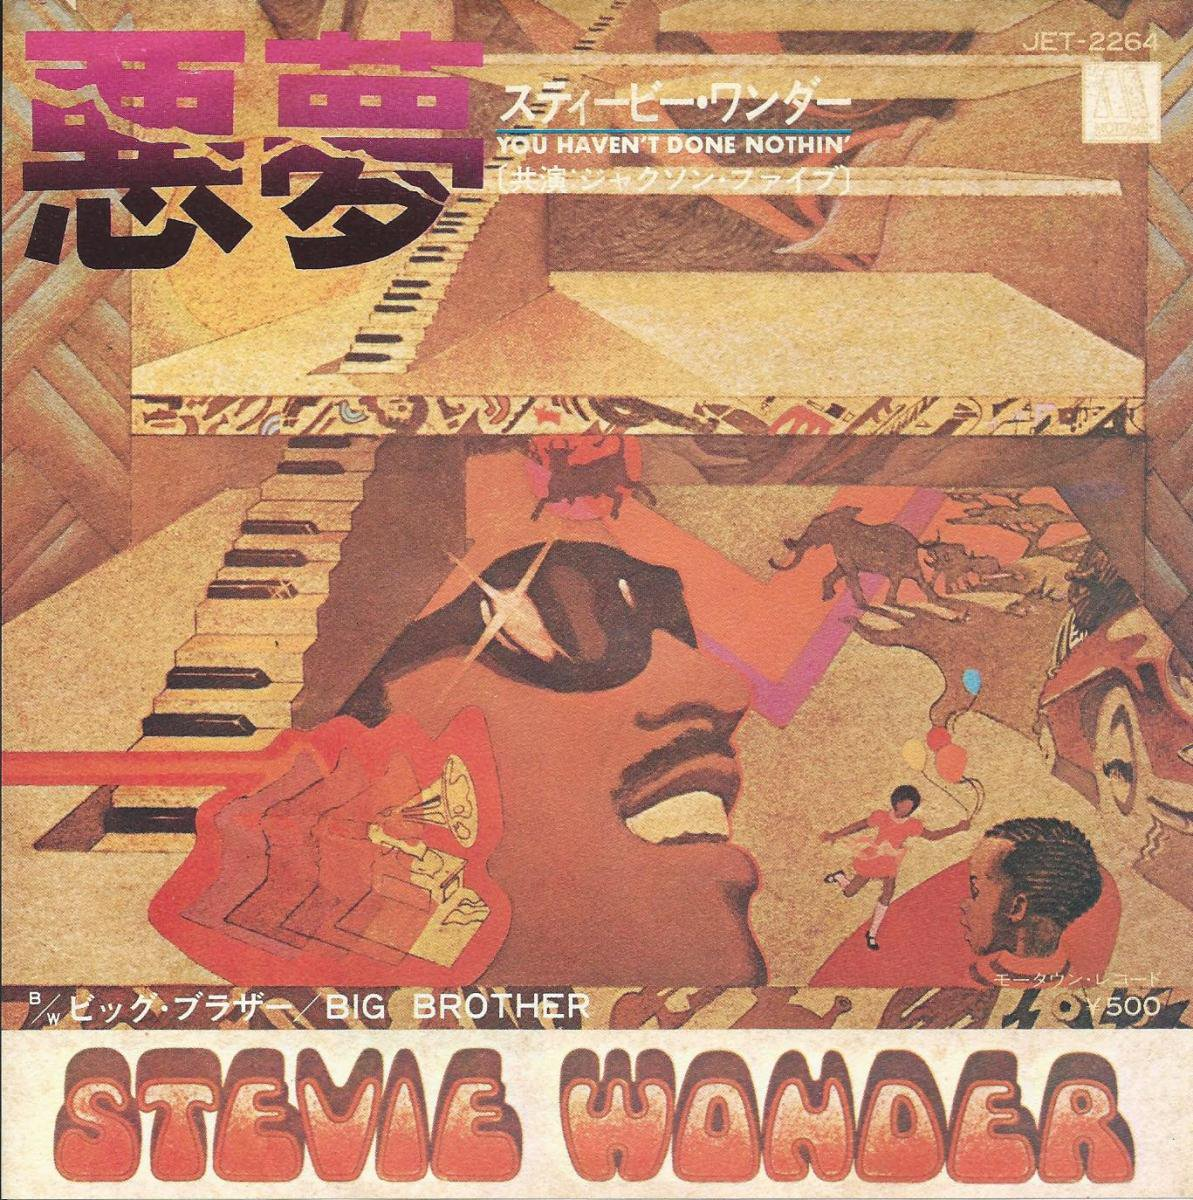 スティービー・ワンダー STEVIE WONDER / 悪夢 YOU HAVEN'T DONE NOTHIN' (7